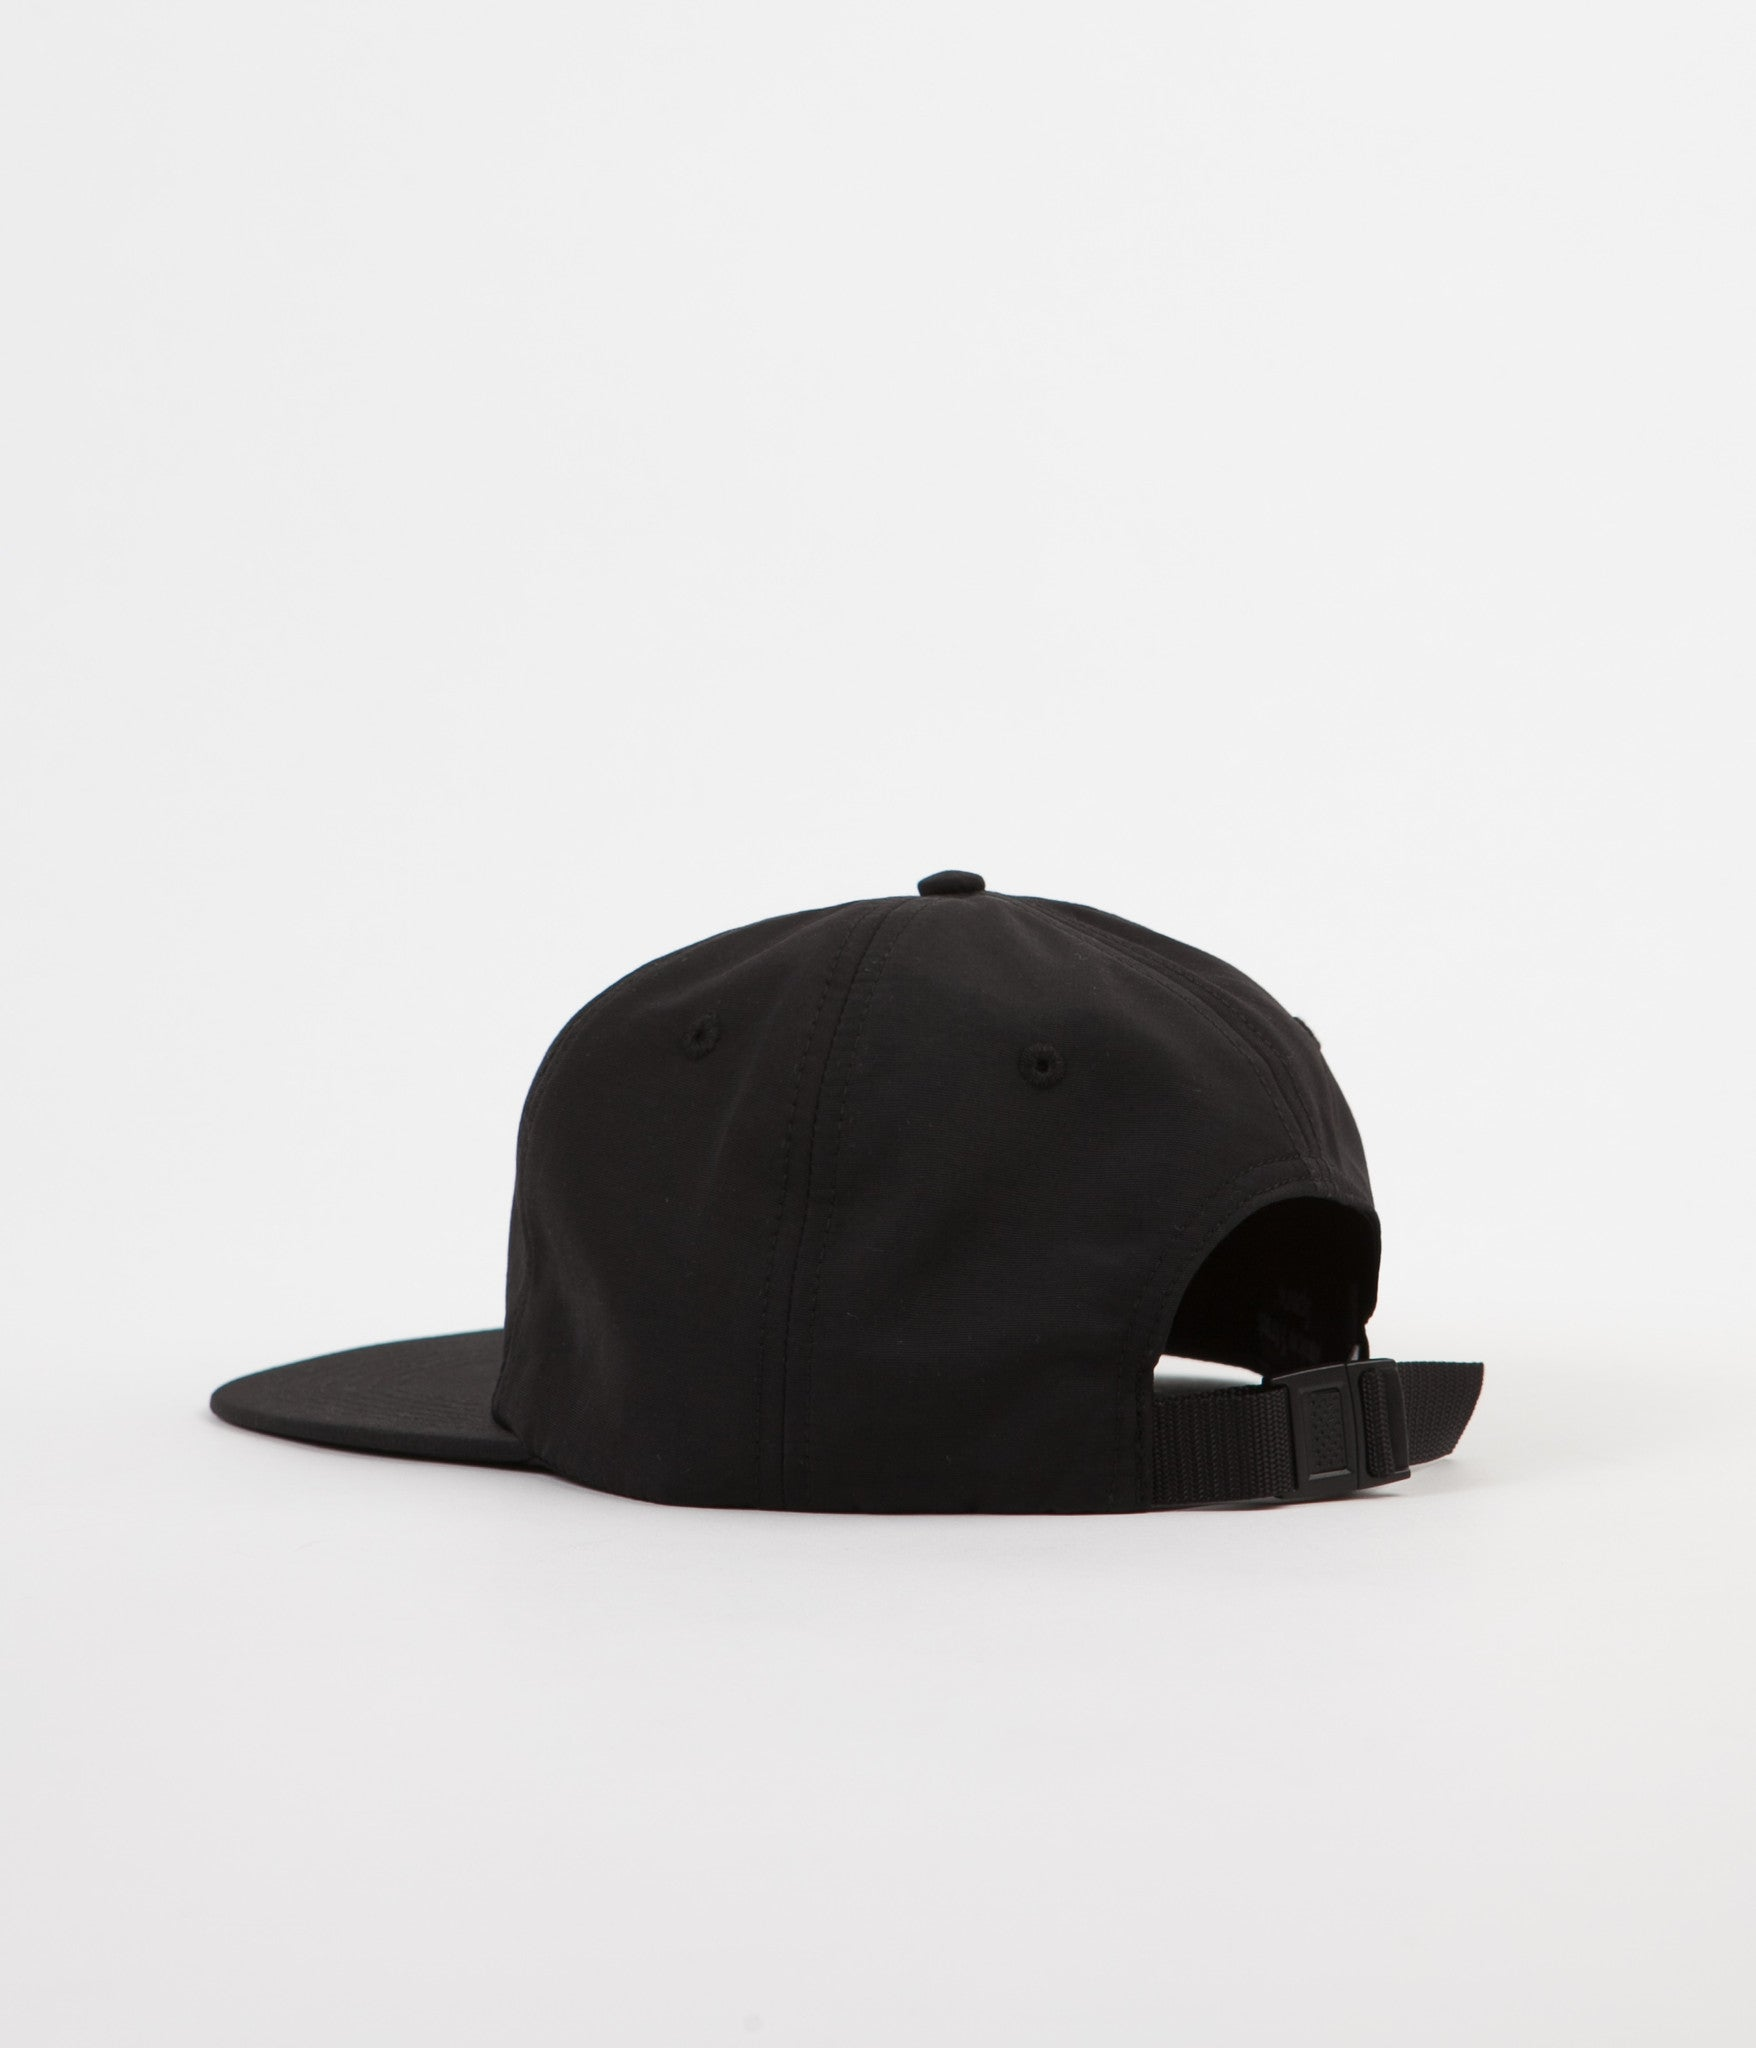 Stanton Street Sports Motion Polo Cap - Black